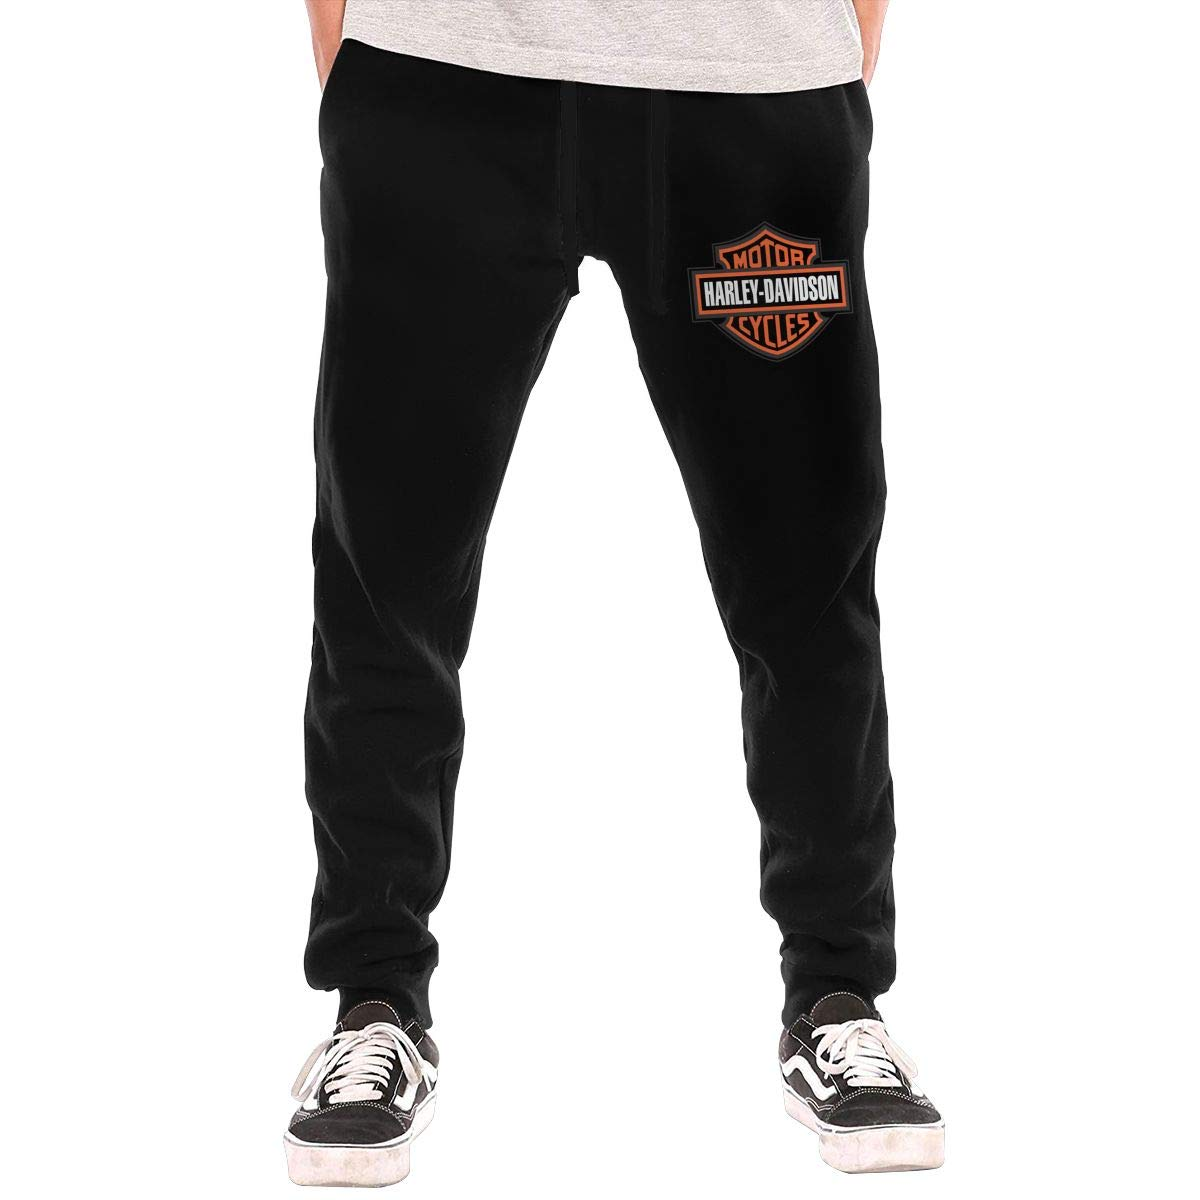 MKILOI PLIOFU Harley Davidson Athletic Men's Open Bottom Light Weight Active Basic Urban Jersey Pants Jogger Pants Black